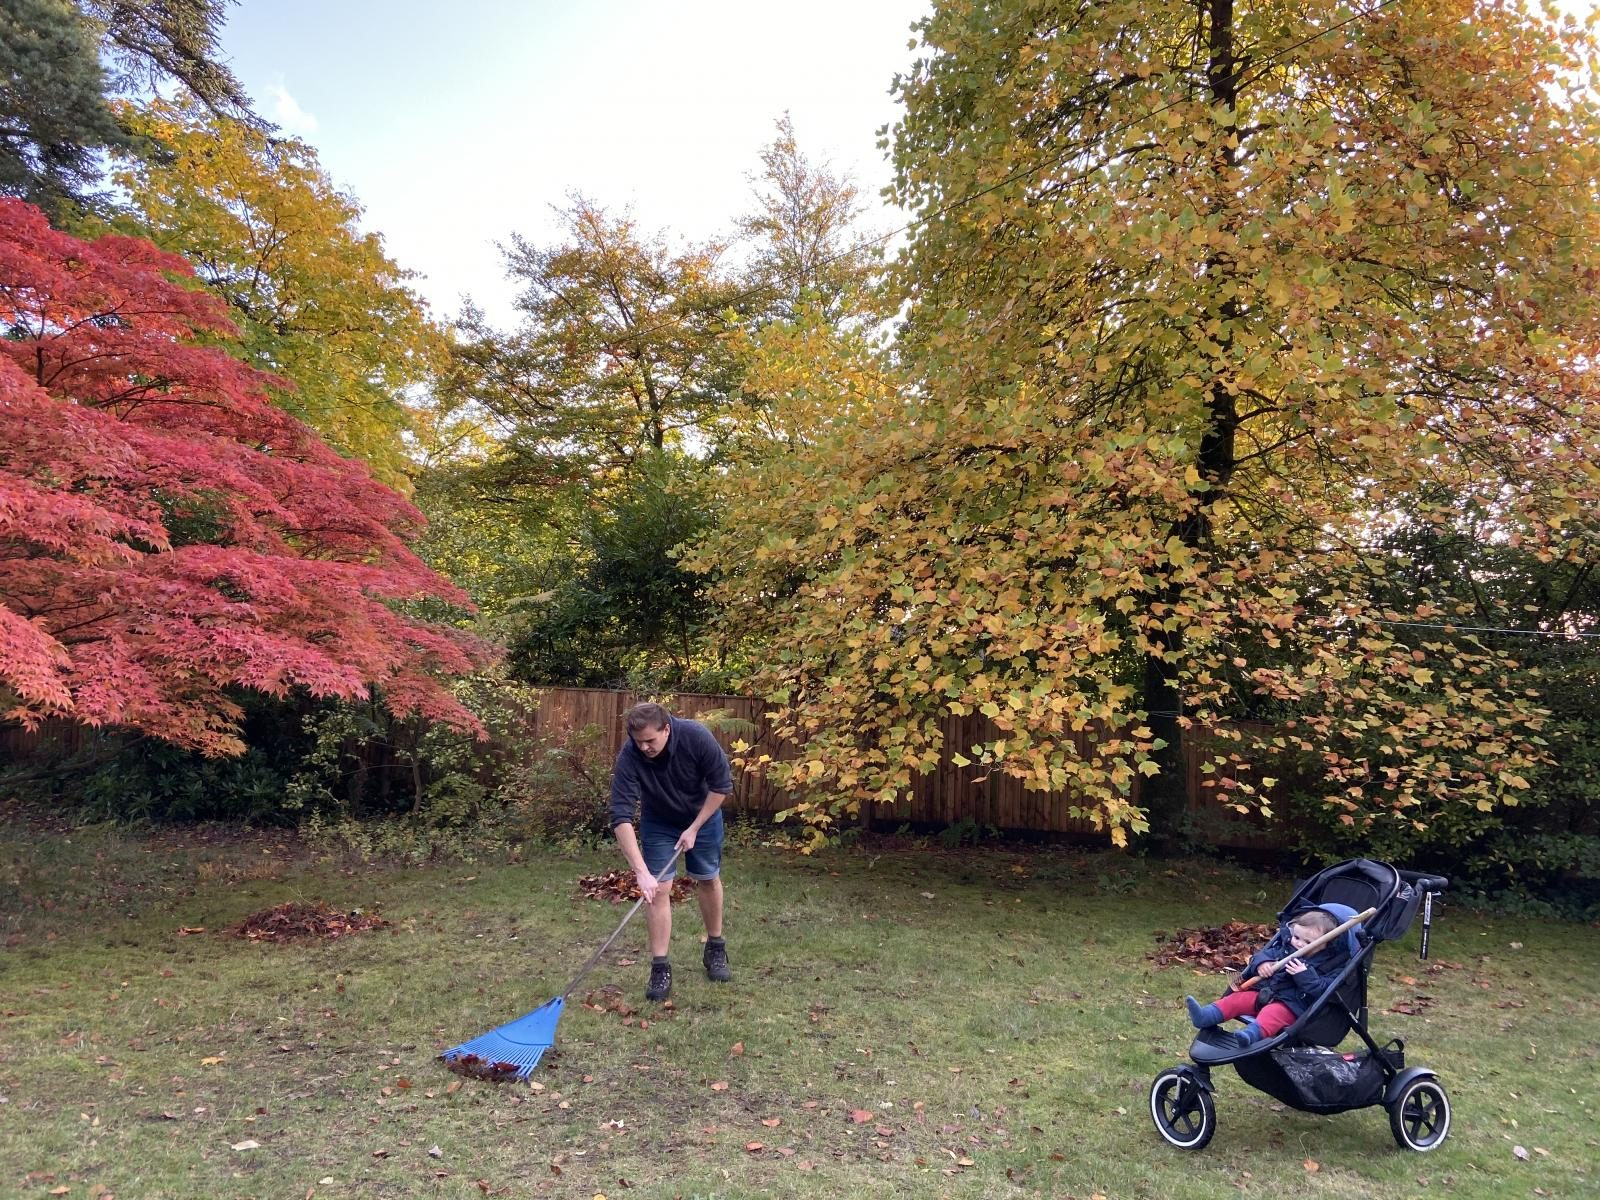 Clean up those leaves - garden jobs to do this autumn